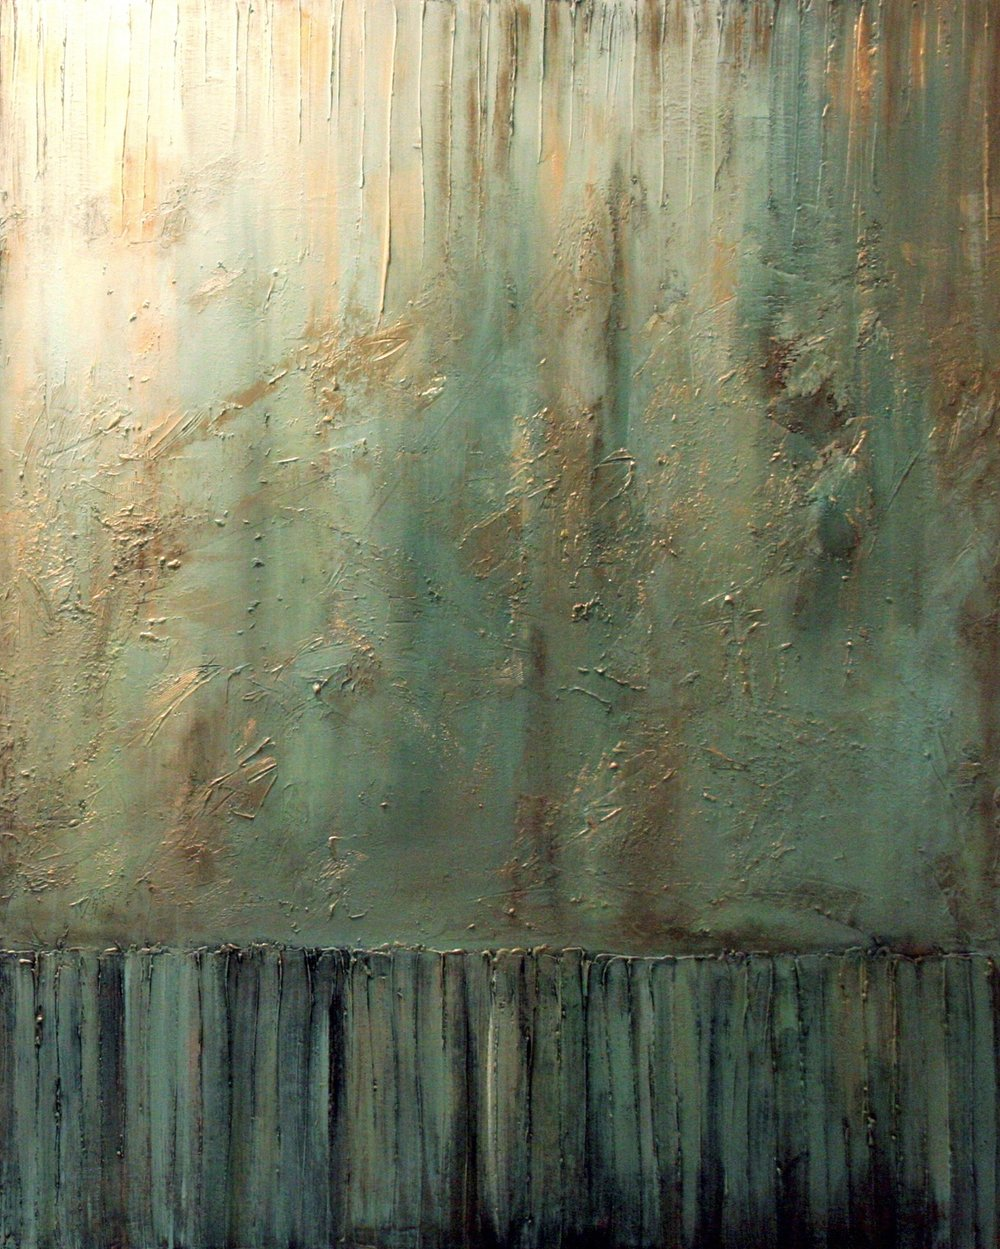 anasazi nights II  60 x 48 x 1.5 inches  mixed media + gold dust on canvas  SOLD